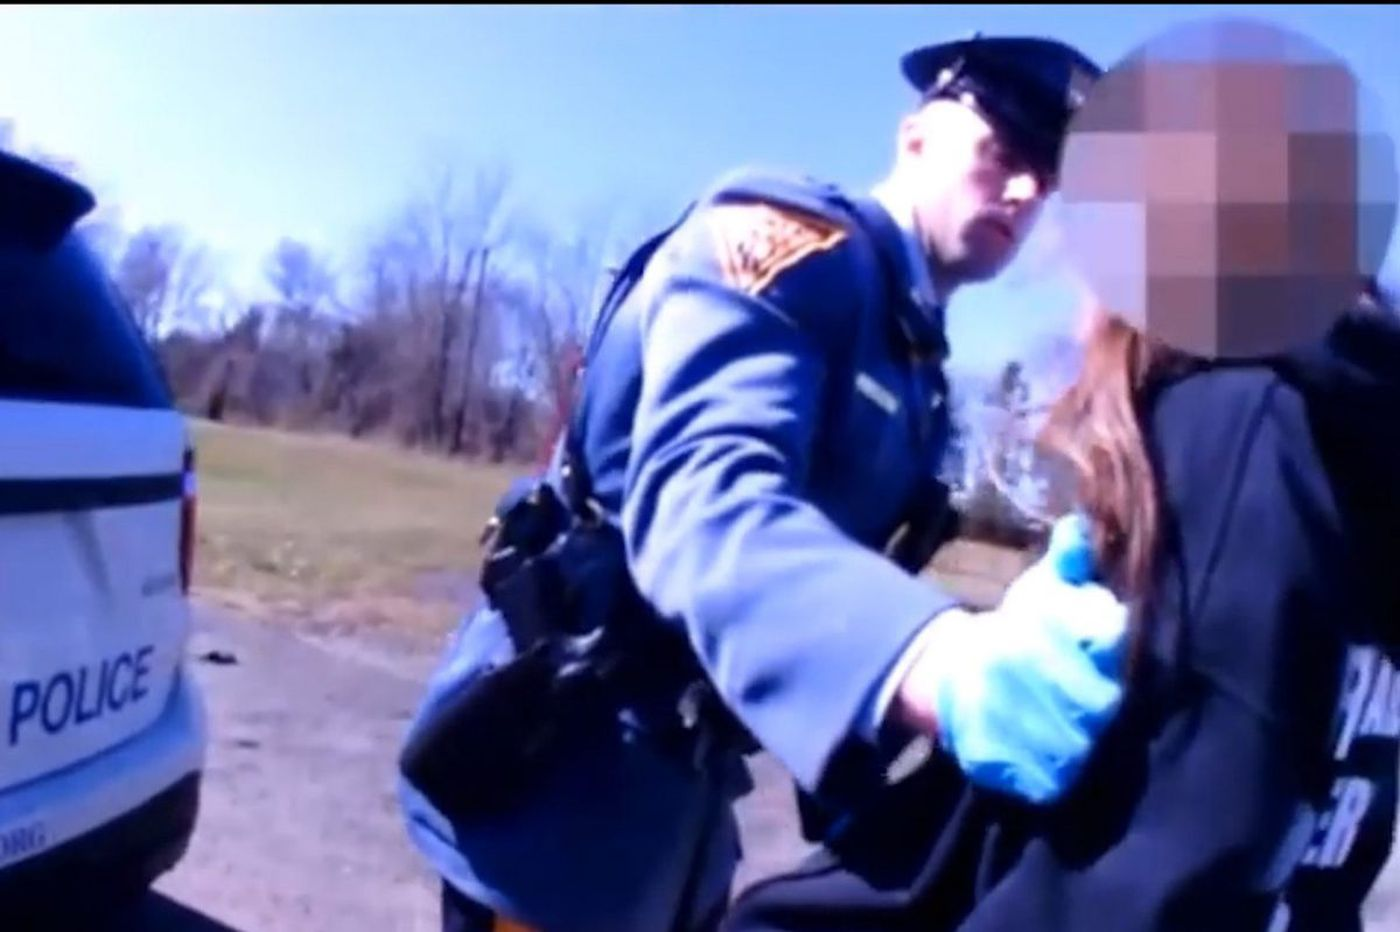 A roadside strip search in N.J. draws protest and legal action. How far can an officer go?